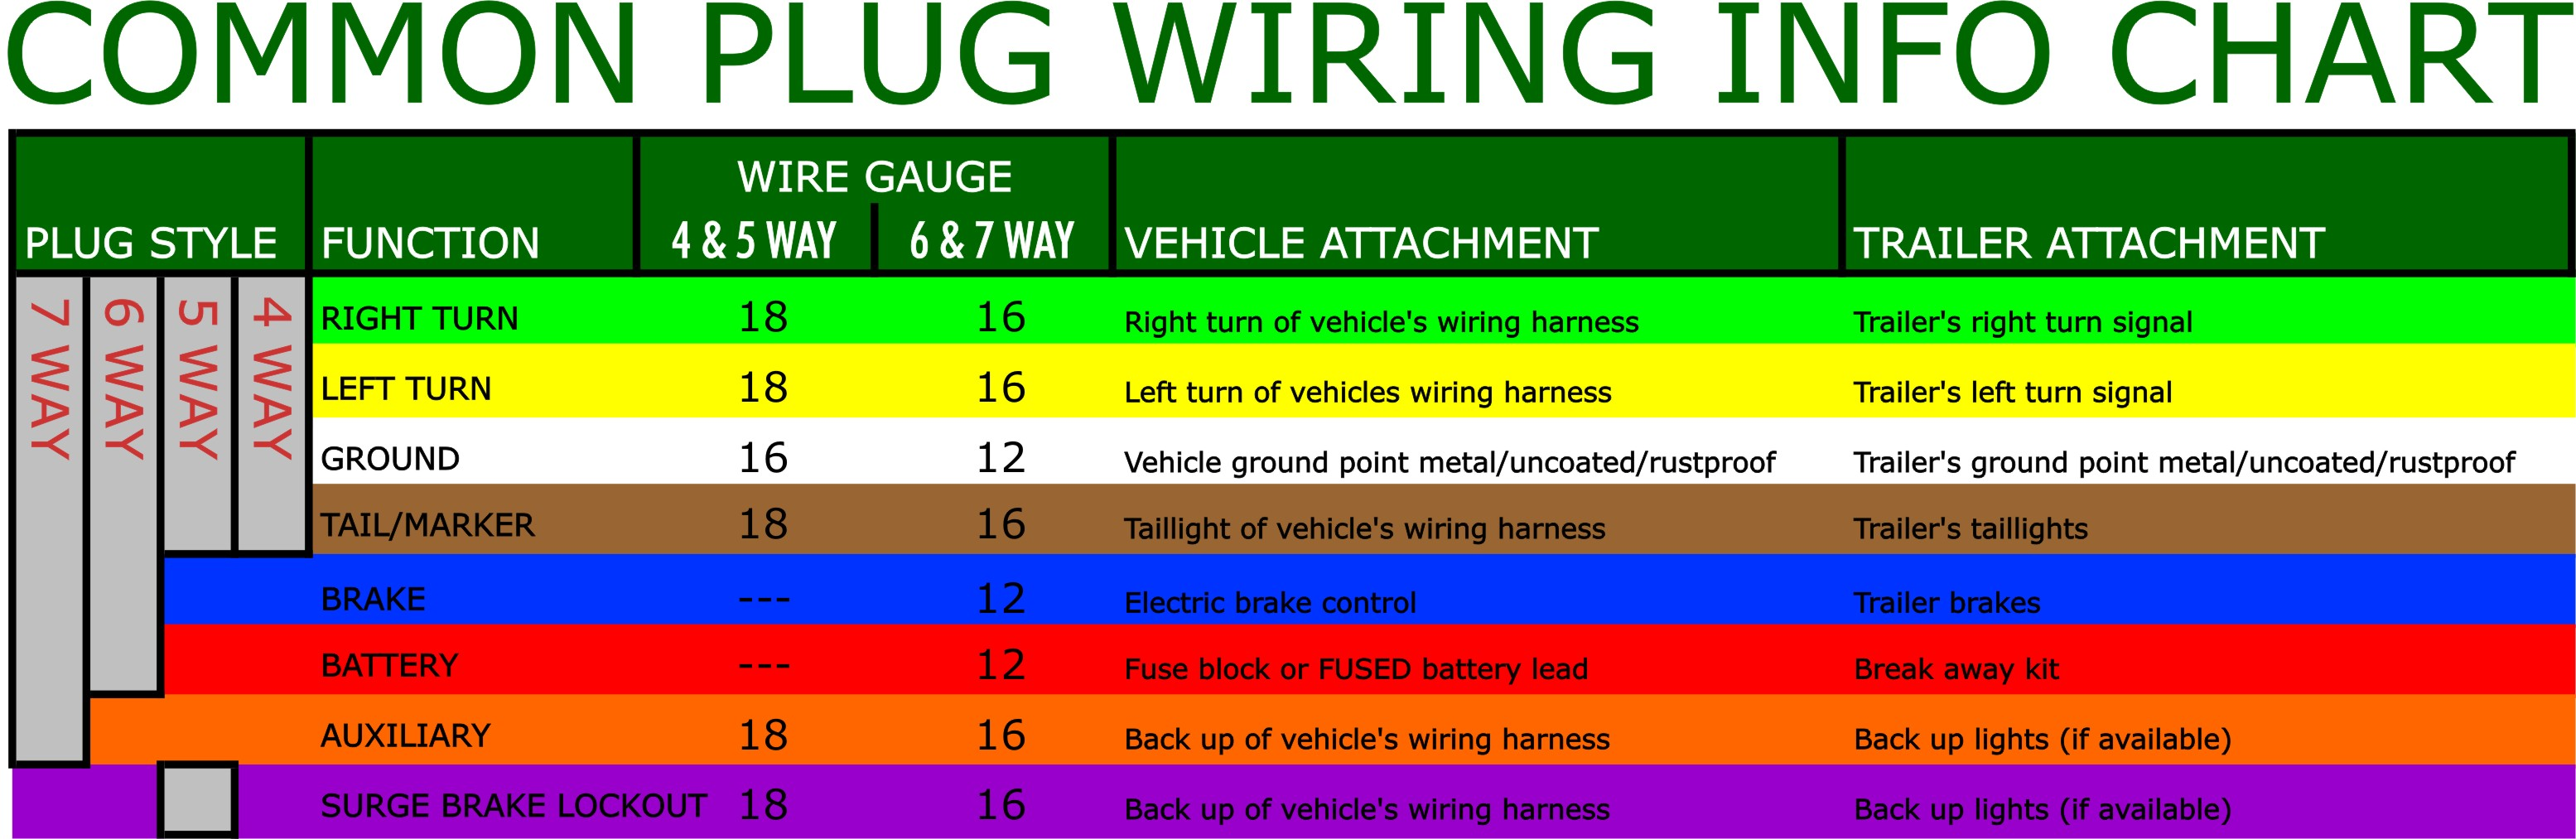 what are the most common trailer plugs? 7-way trailer plug wiring diagram vehicle trailer 7 way trailer plug wiring diagram #25